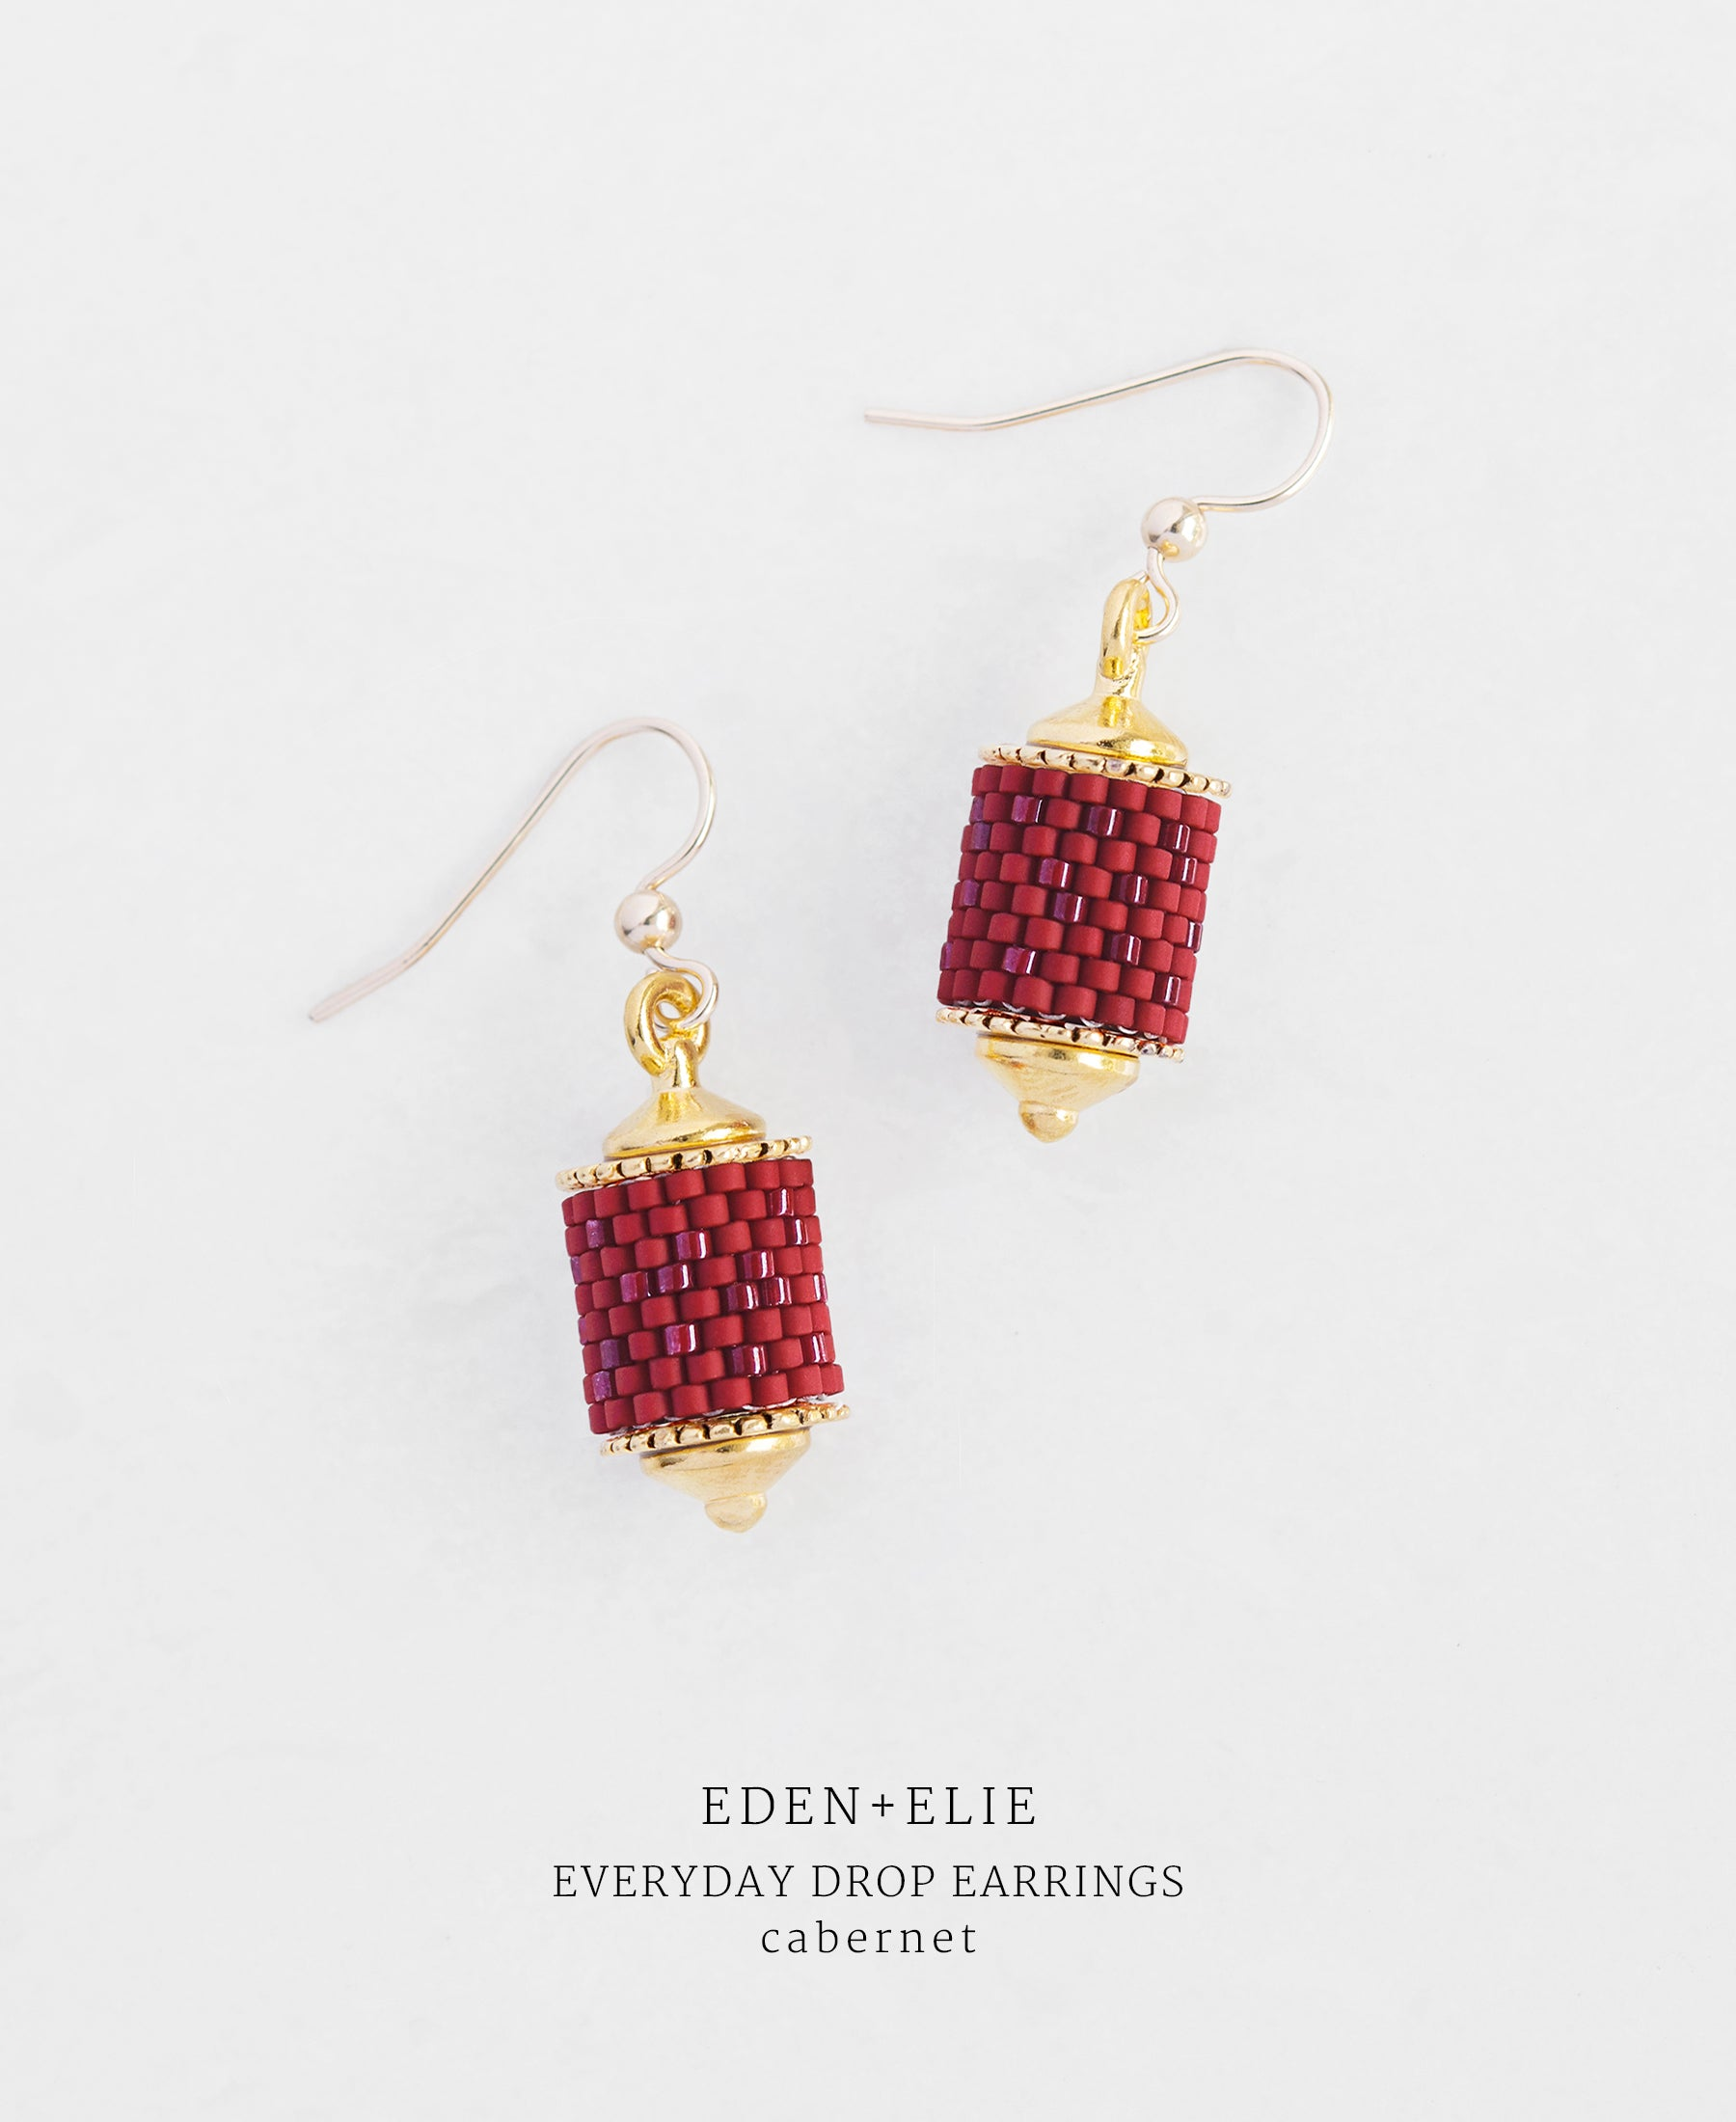 EDEN + ELIE Everyday drop earrings - cabernet red